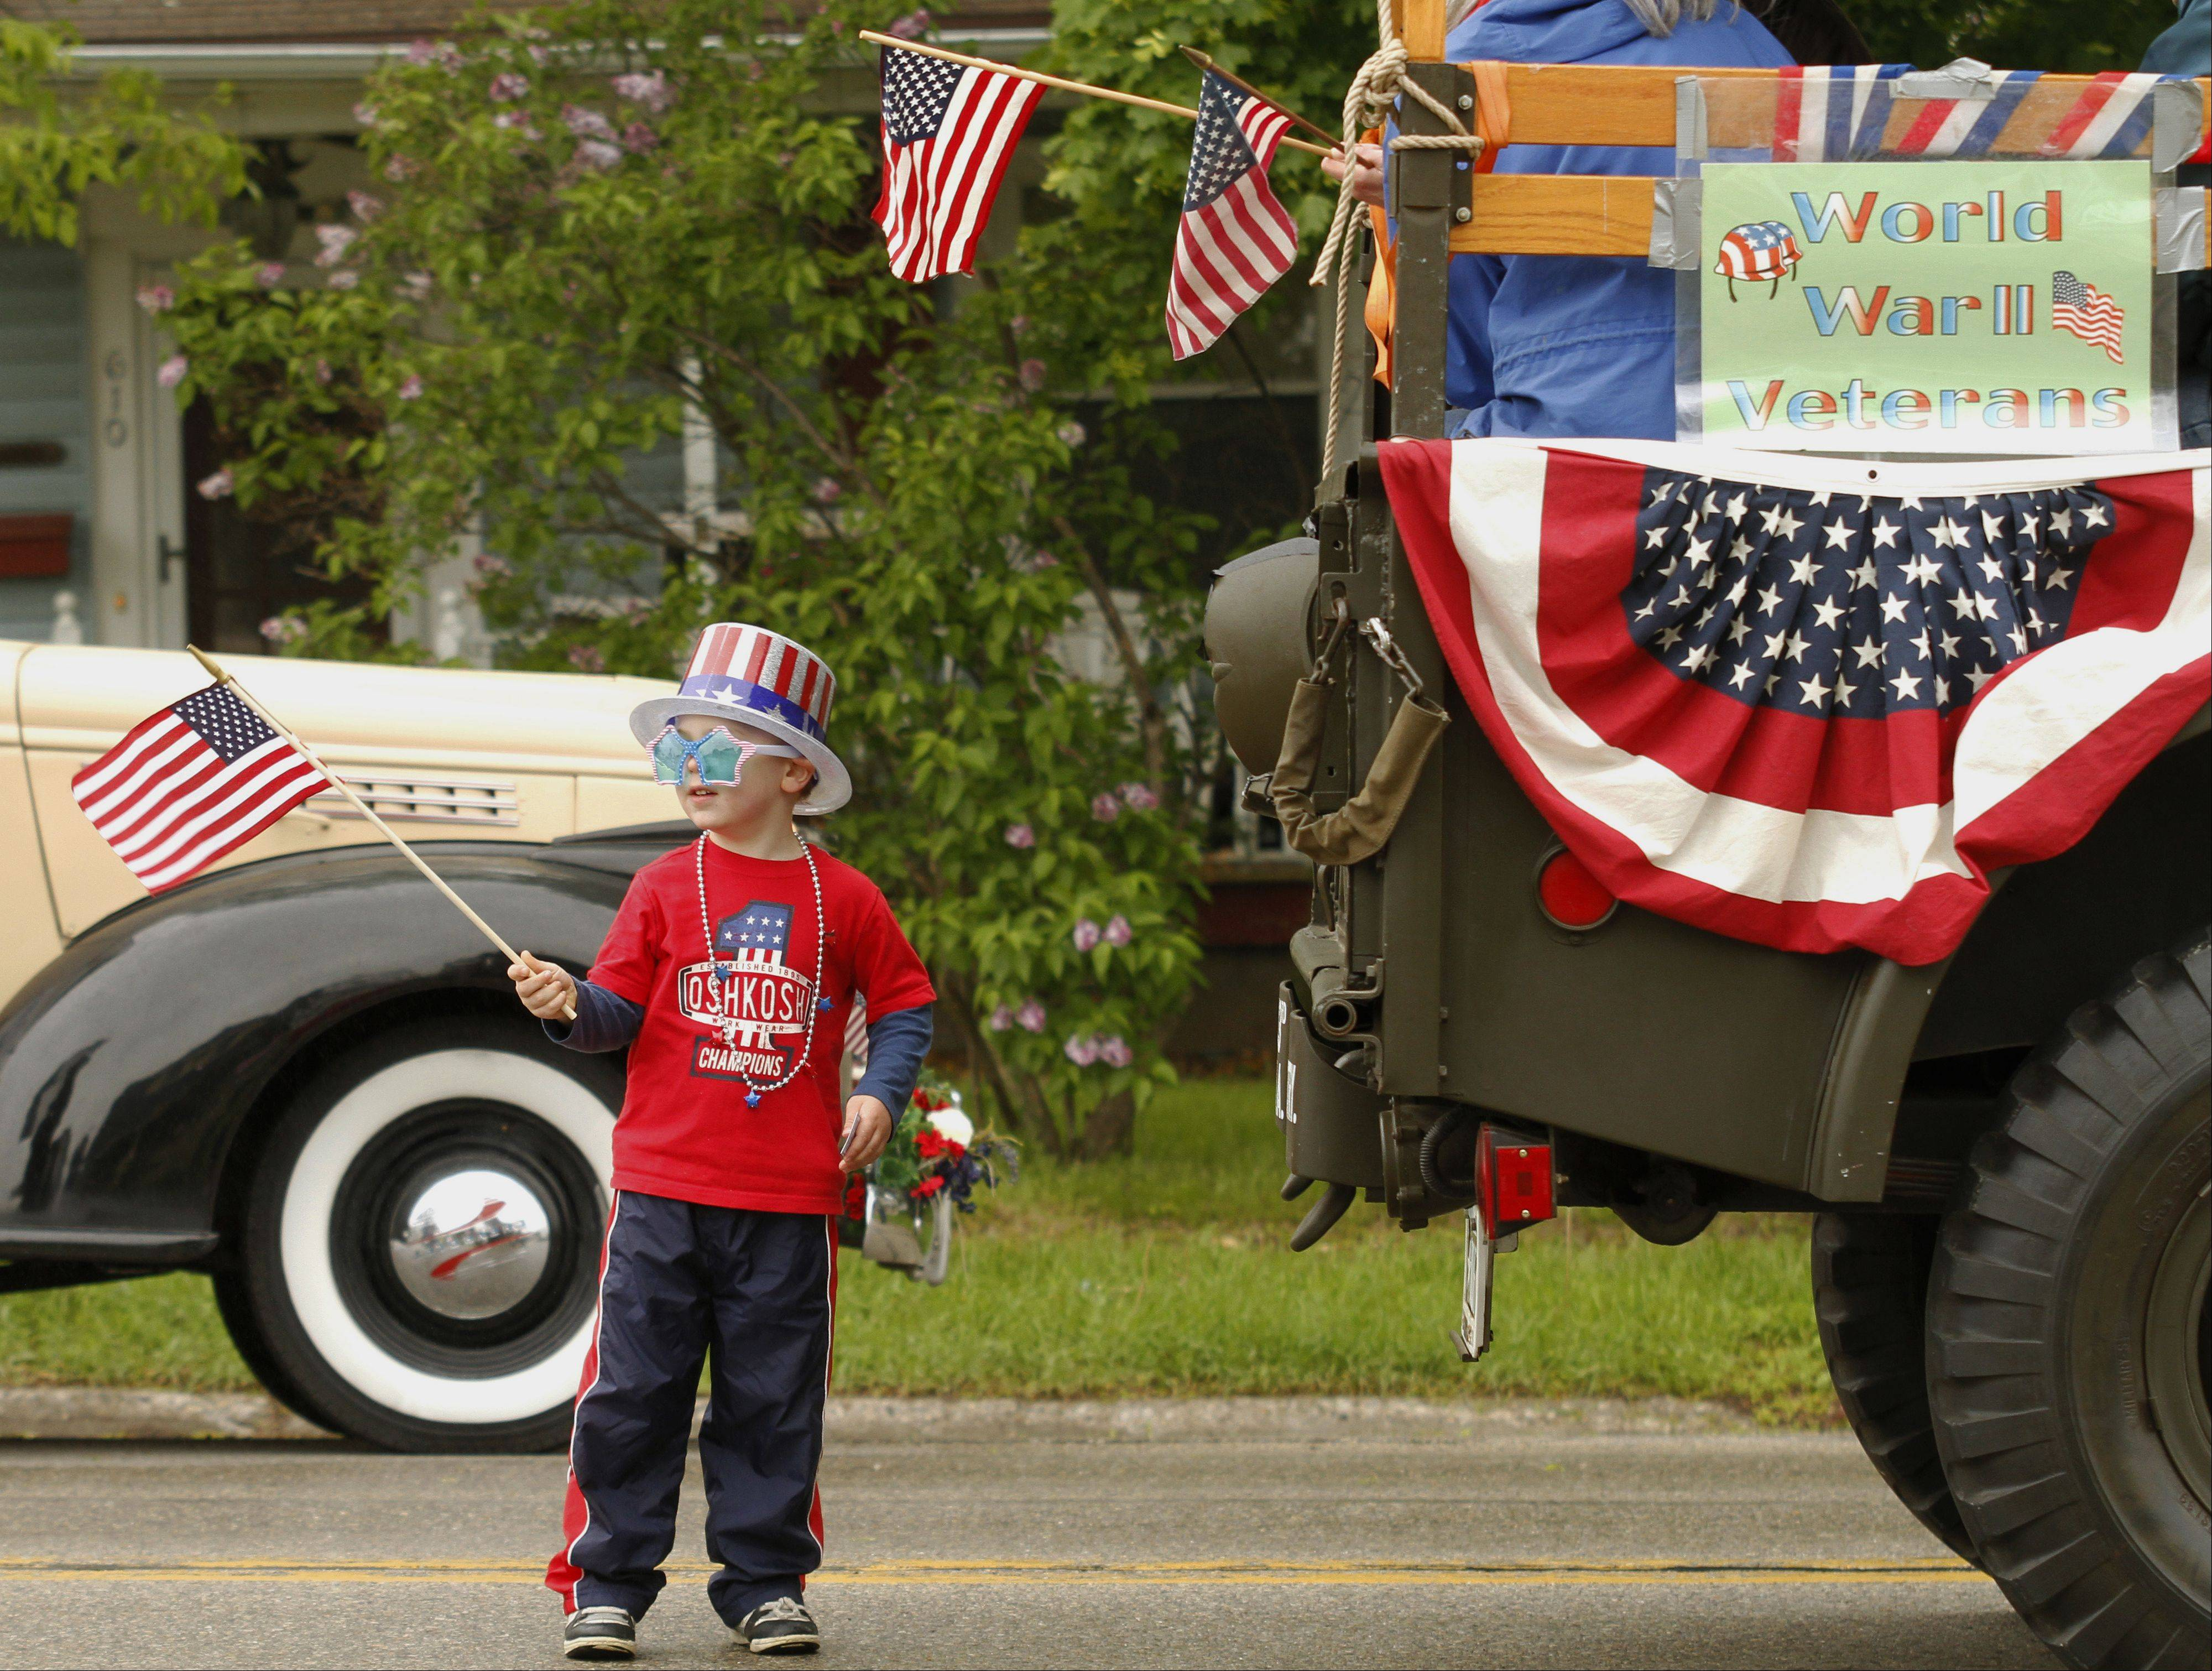 Jacob Webster, 4, of West Bend waits for the Memorial Day parade to begin in West Bend on Monday, May 27, 2013.